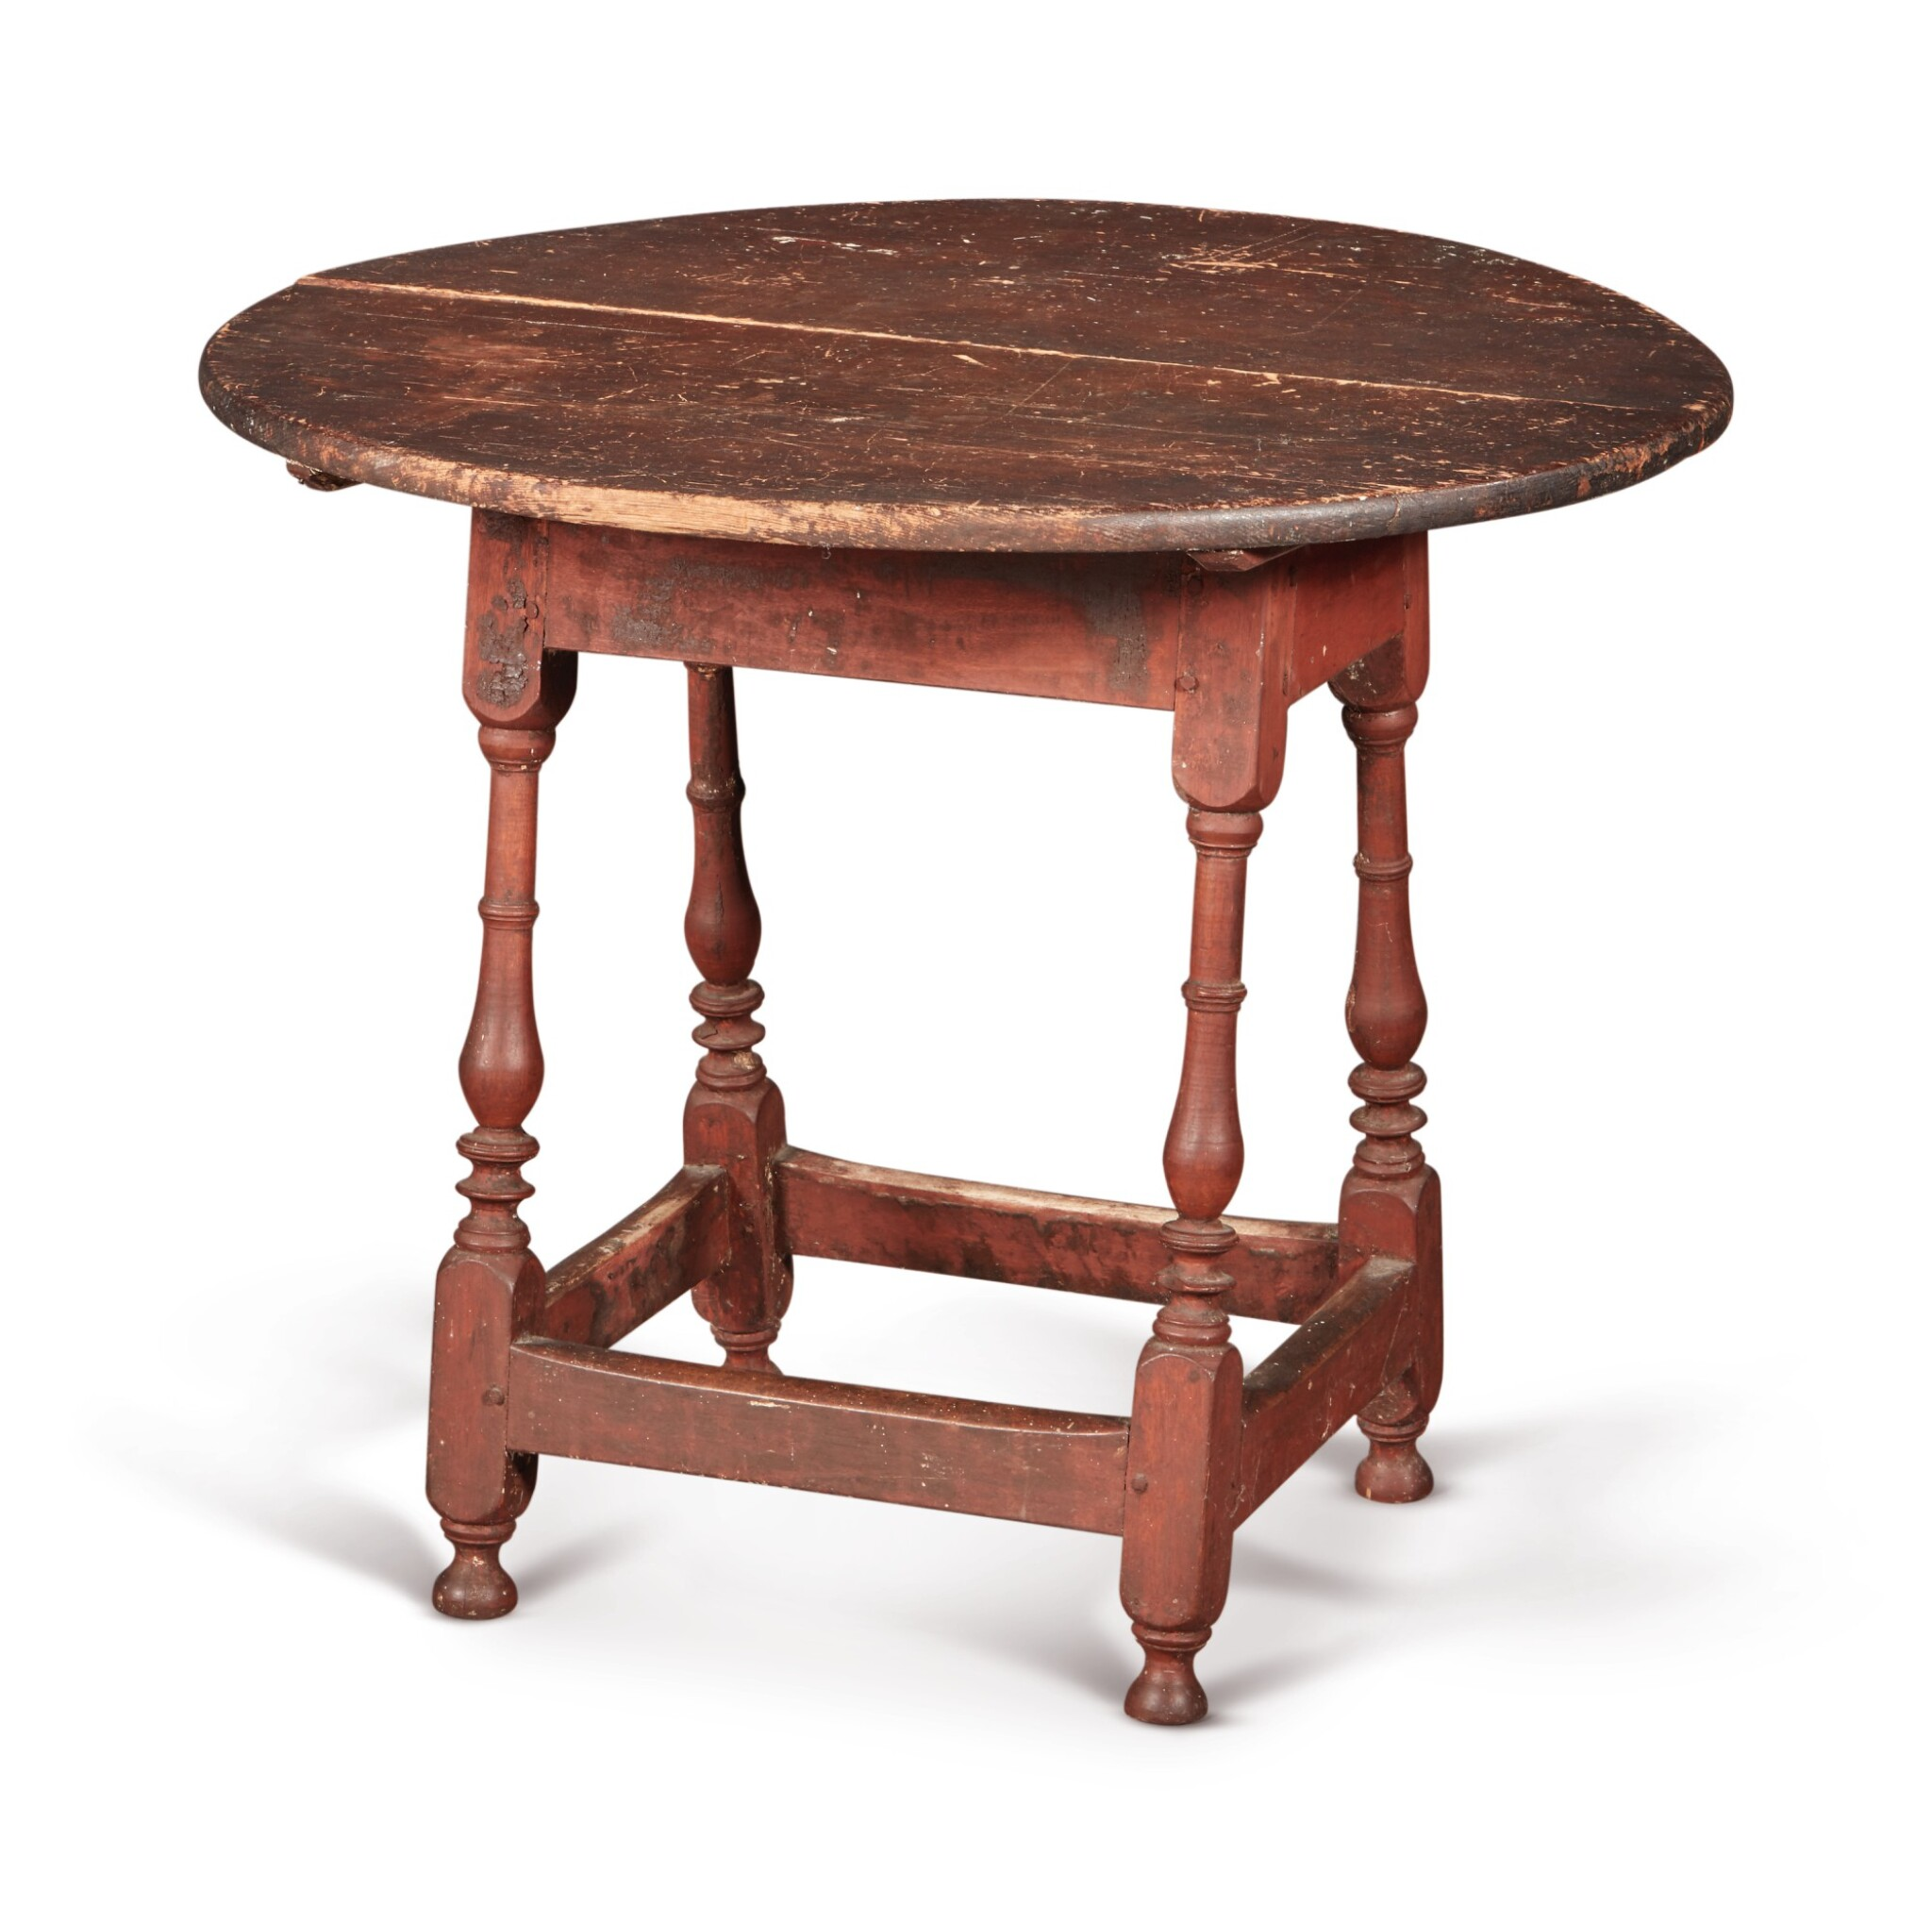 View full screen - View 1 of Lot 1. William and Mary Red-Painted Maple and Pine Tilt-Top Tavern Table, New England, circa 1730.